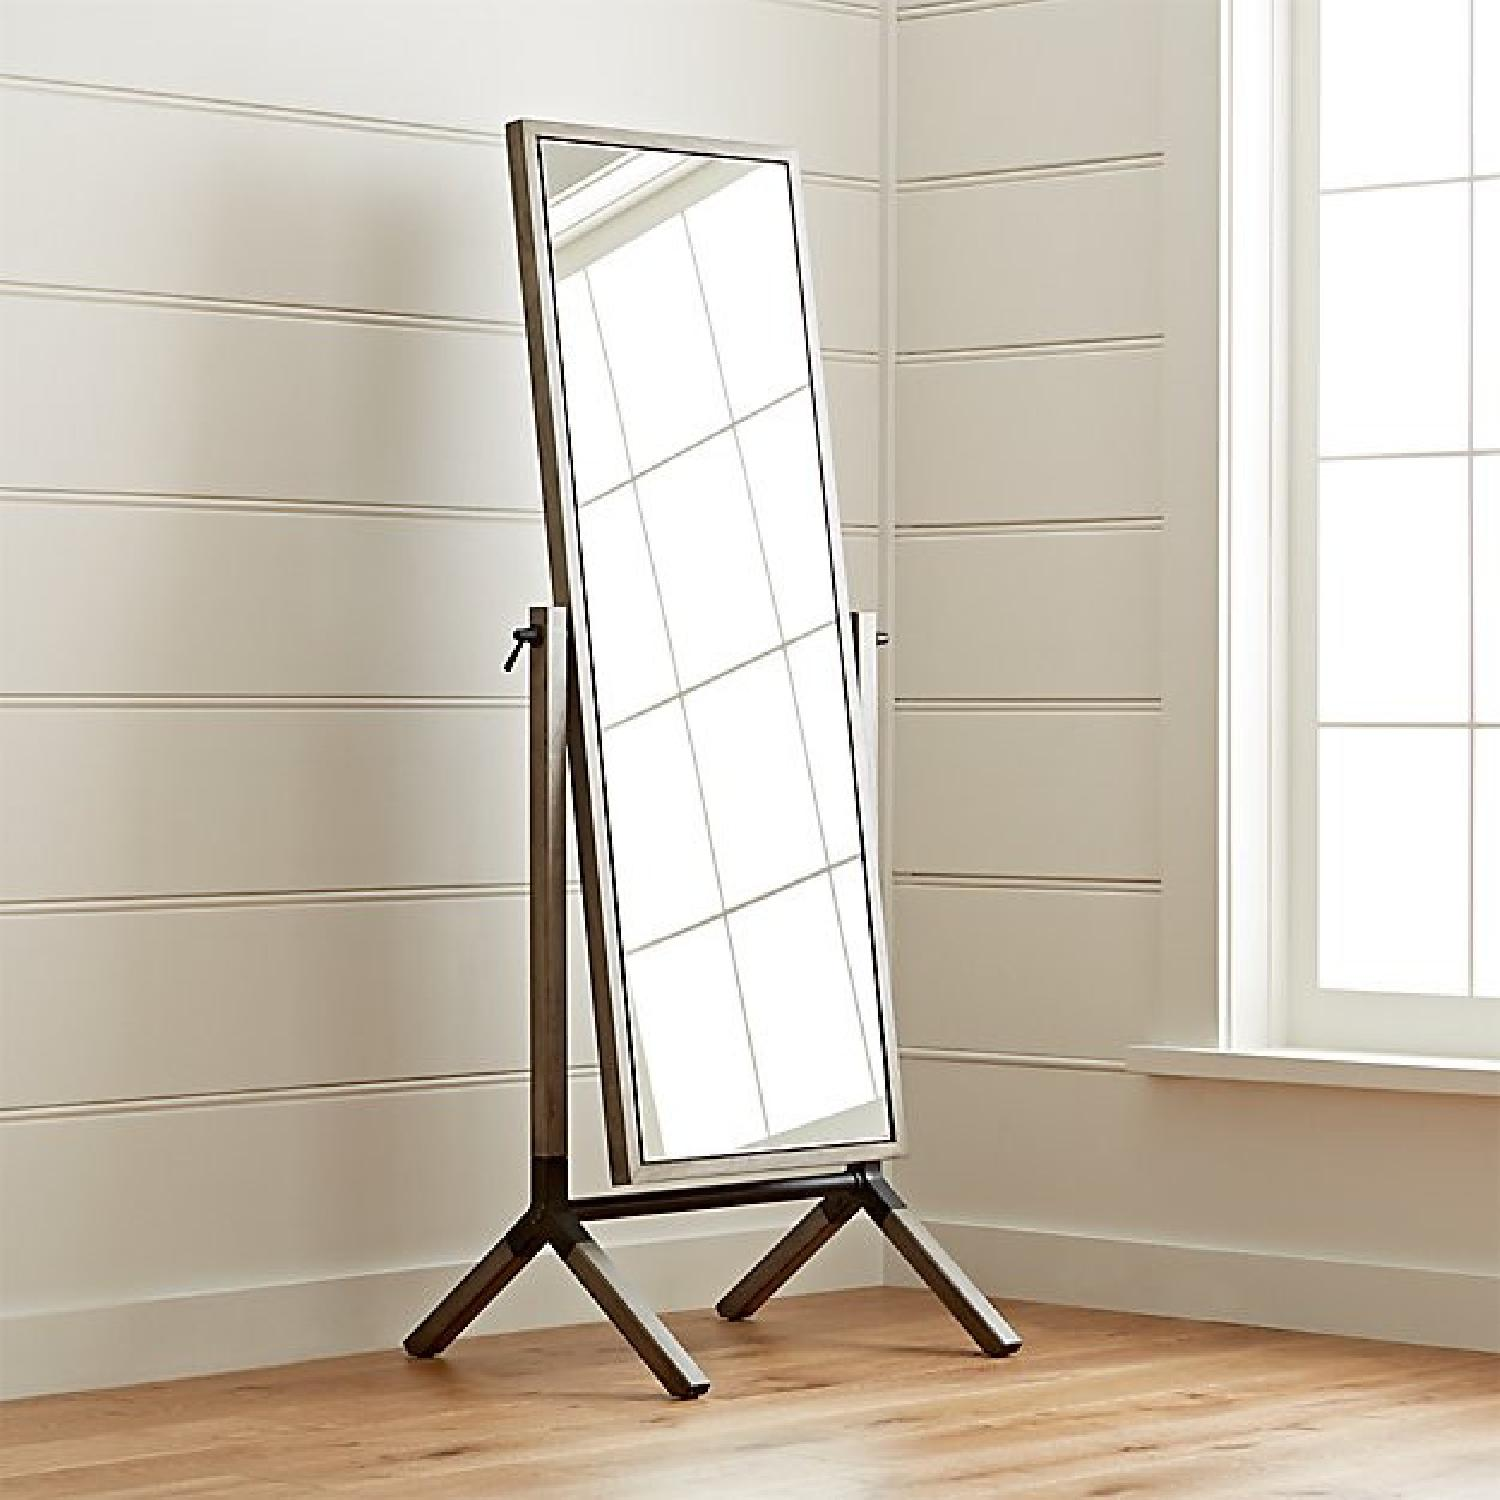 Crate & Barrel Malvern Grey Cheval Floor Mirror - image-3